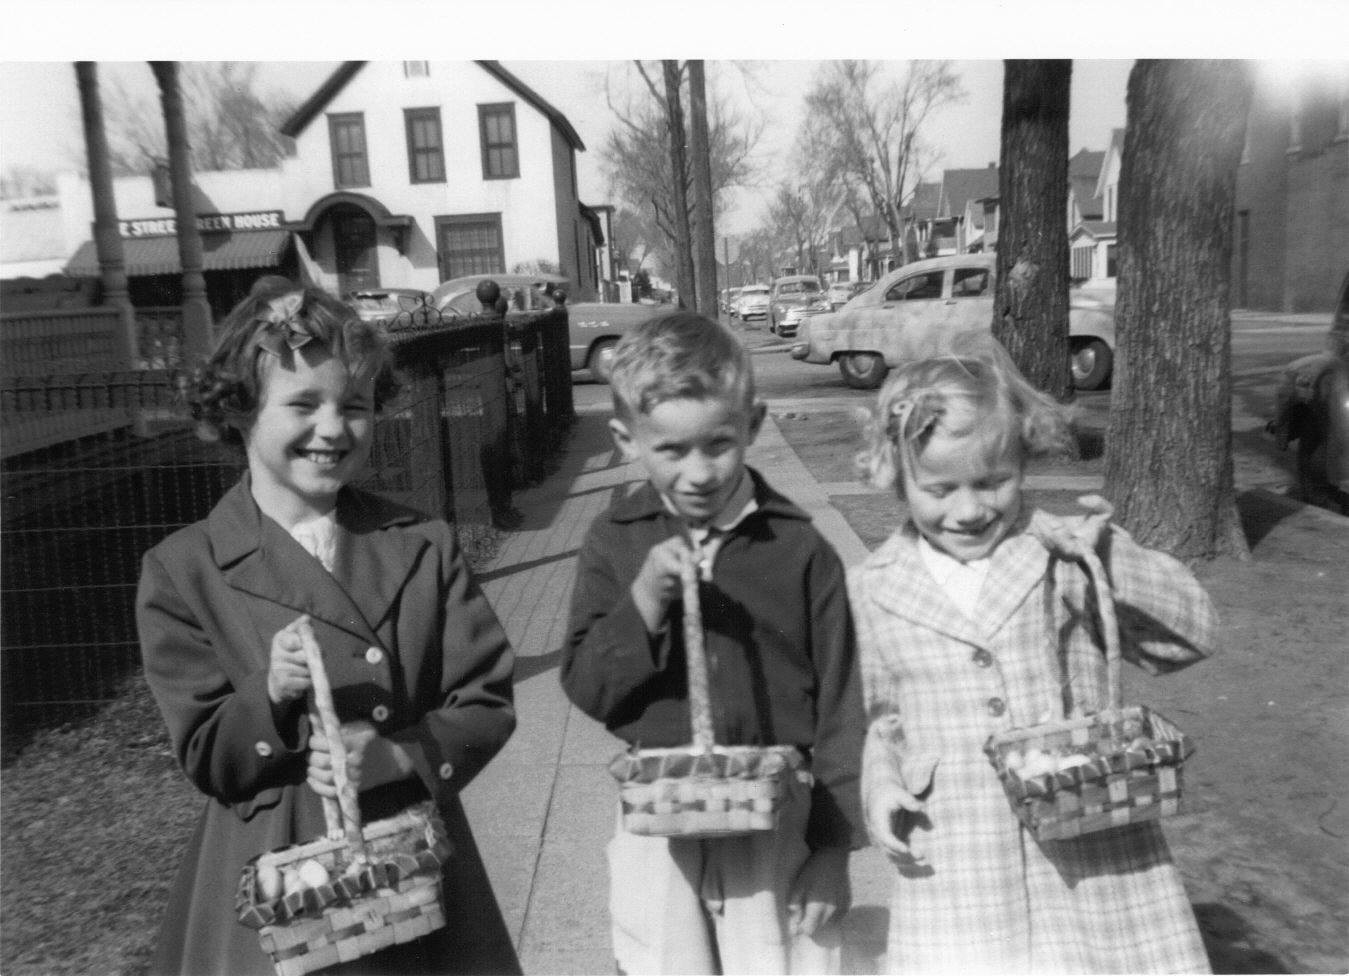 Neighborhood children show their Easter baskets in 1956. The Dale Street Greenhouse is in the background.